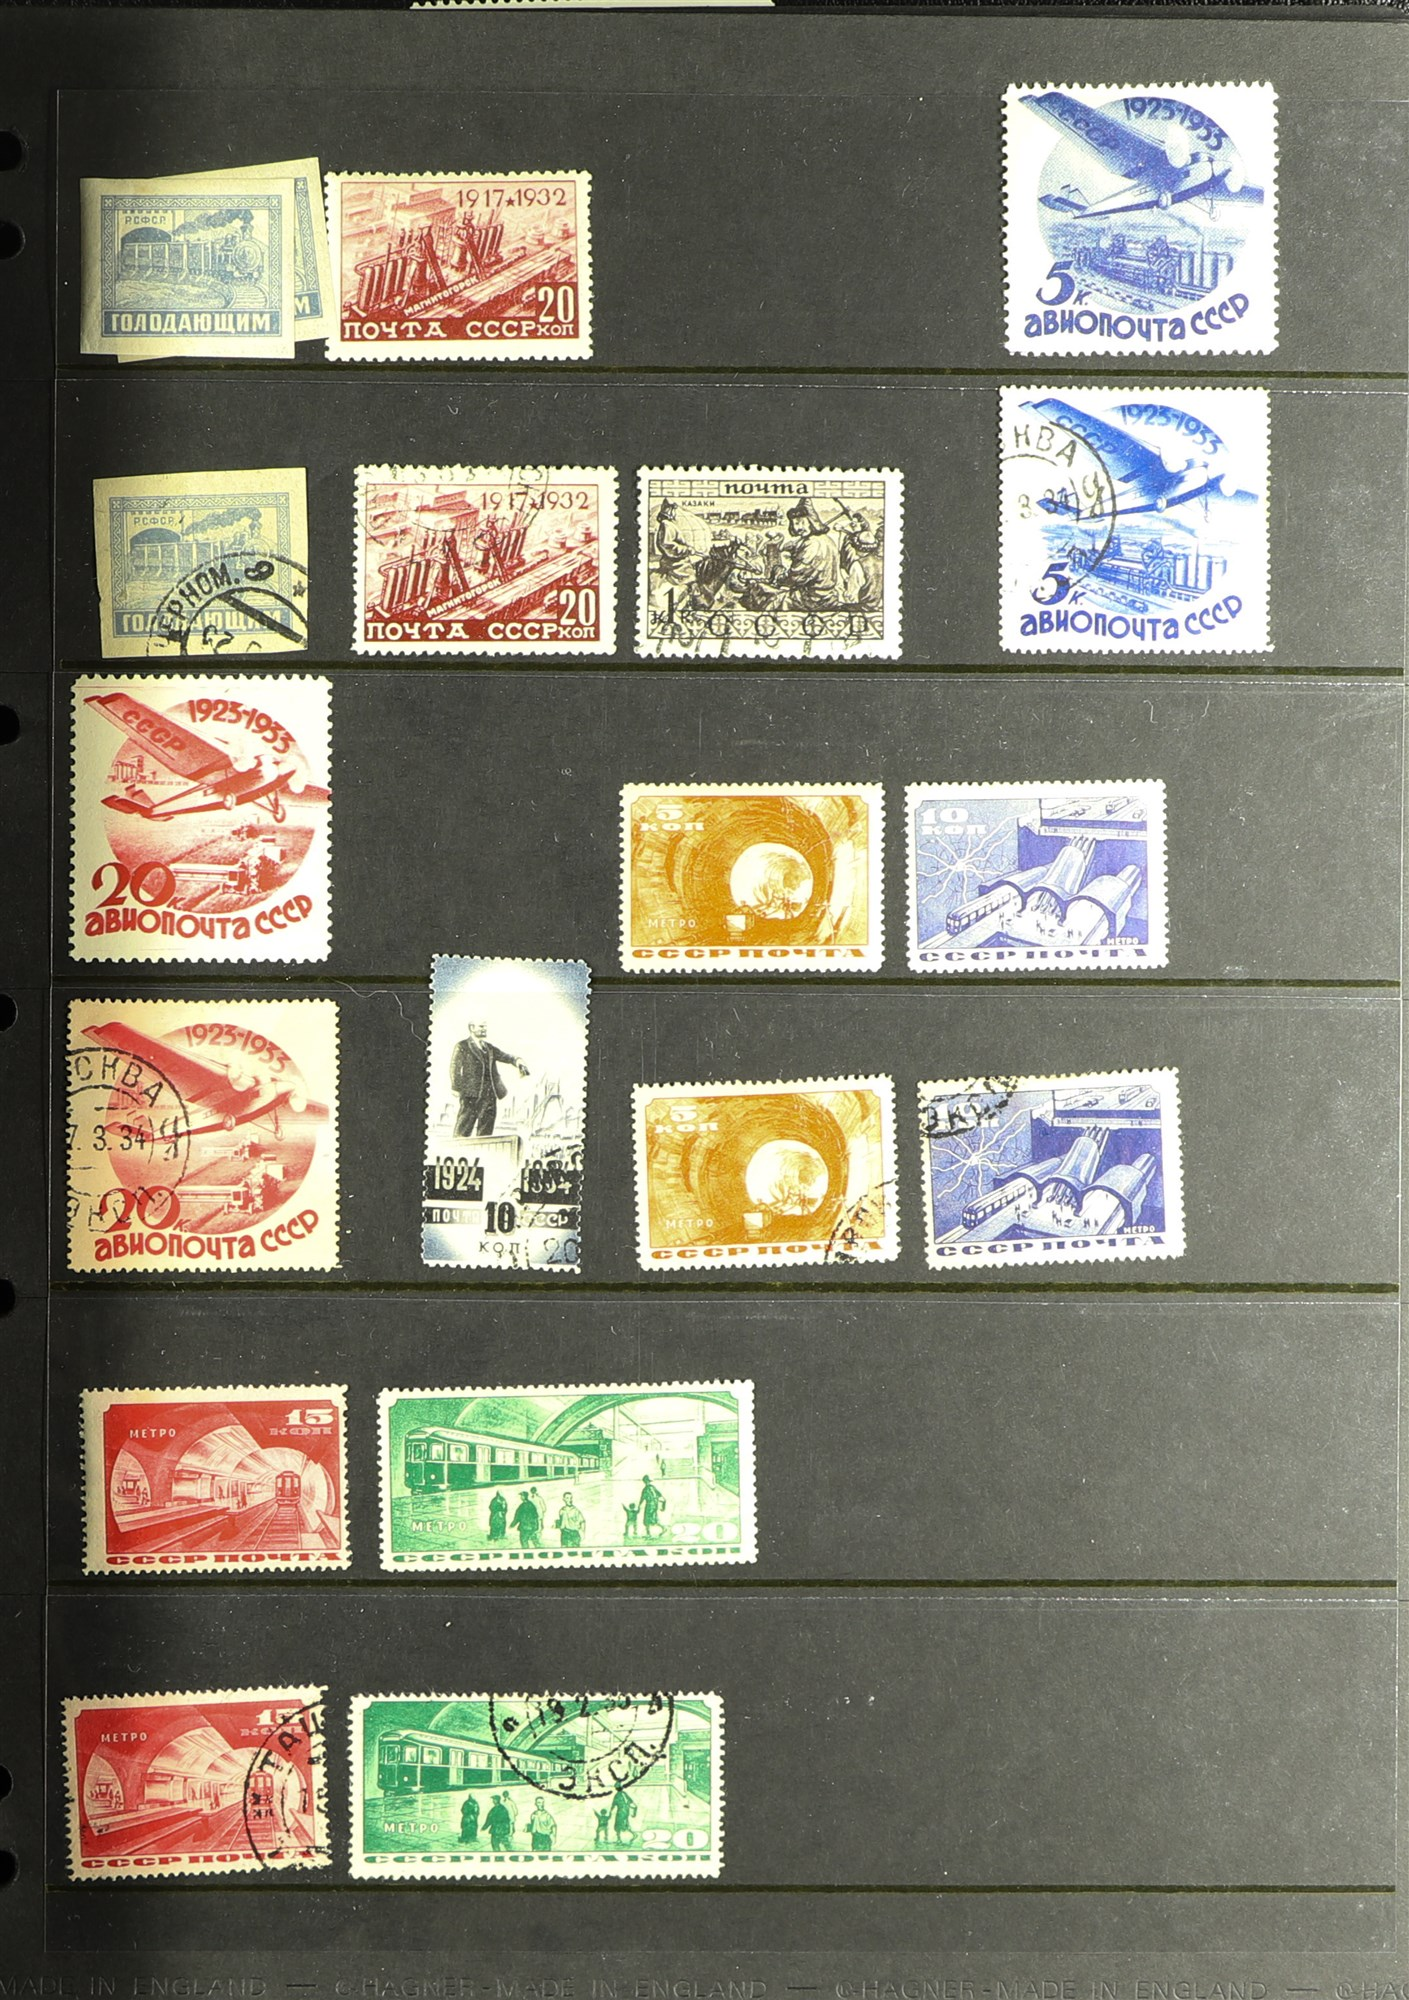 COLLECTIONS & ACCUMULATIONS RAILWAY & TRAINS ON STAMPS TOPICAL COLLECTION in six albums, early to - Image 7 of 7